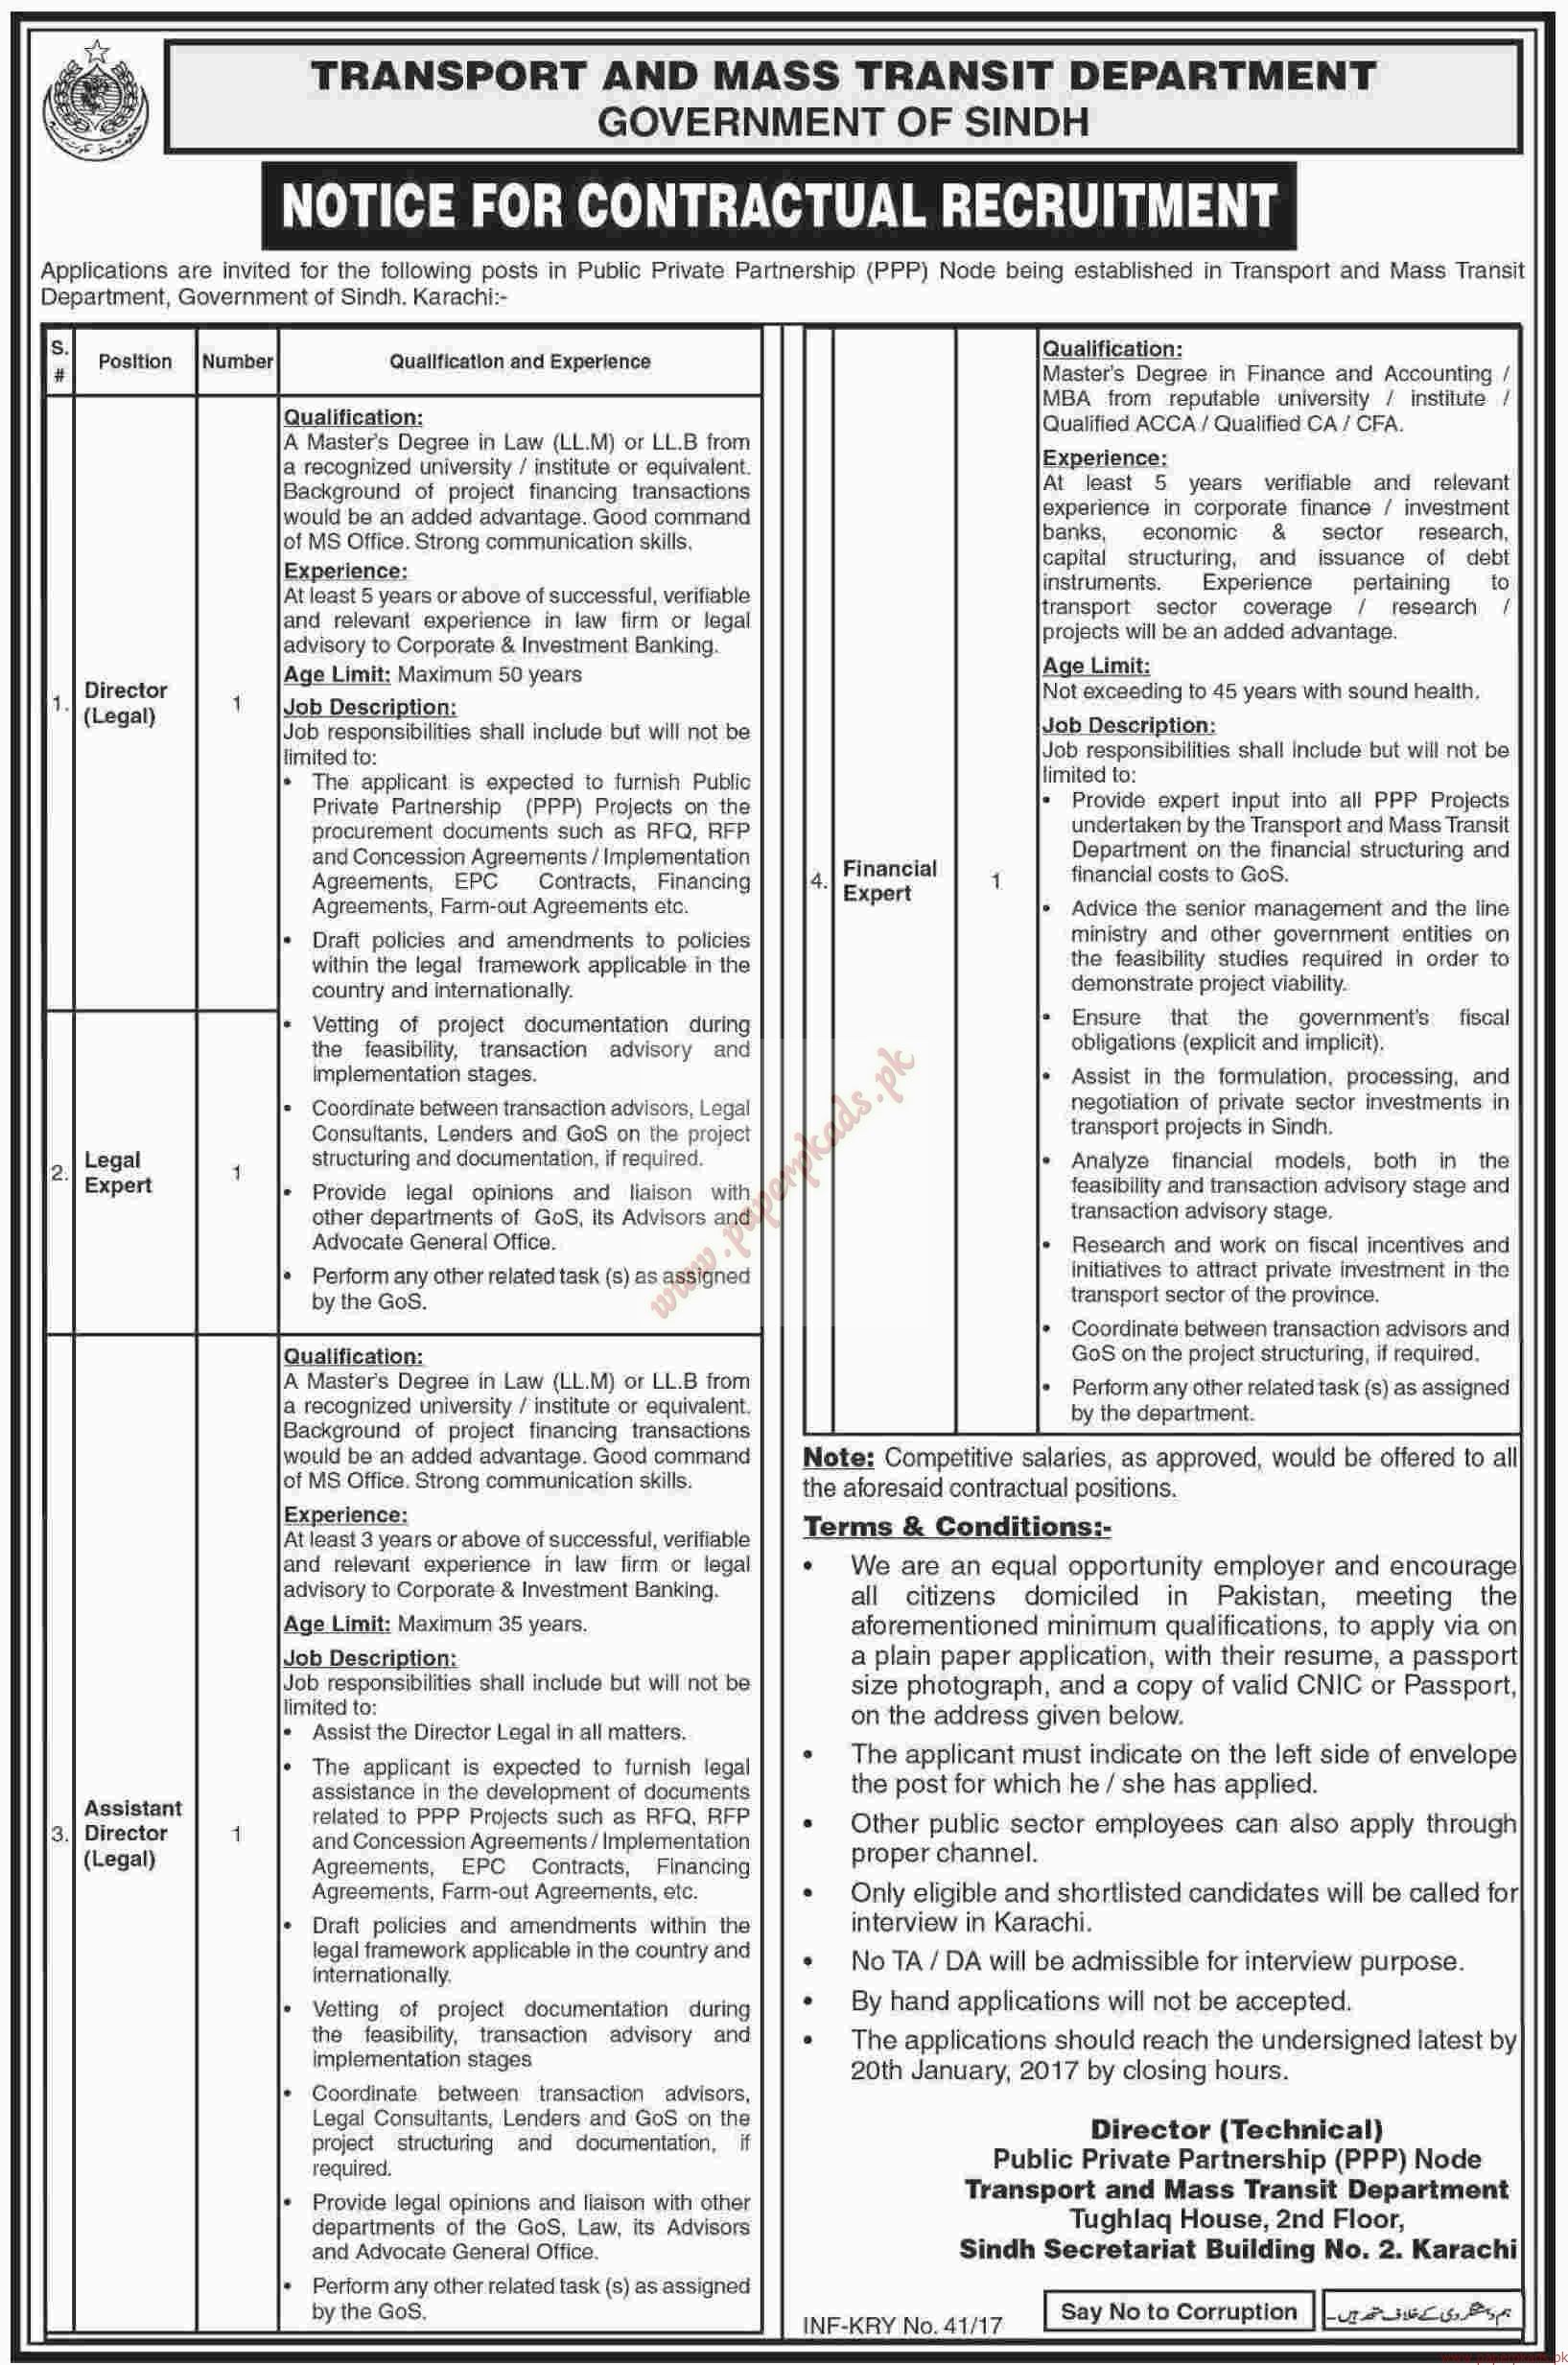 Transport and Mass Transit Department Jobs